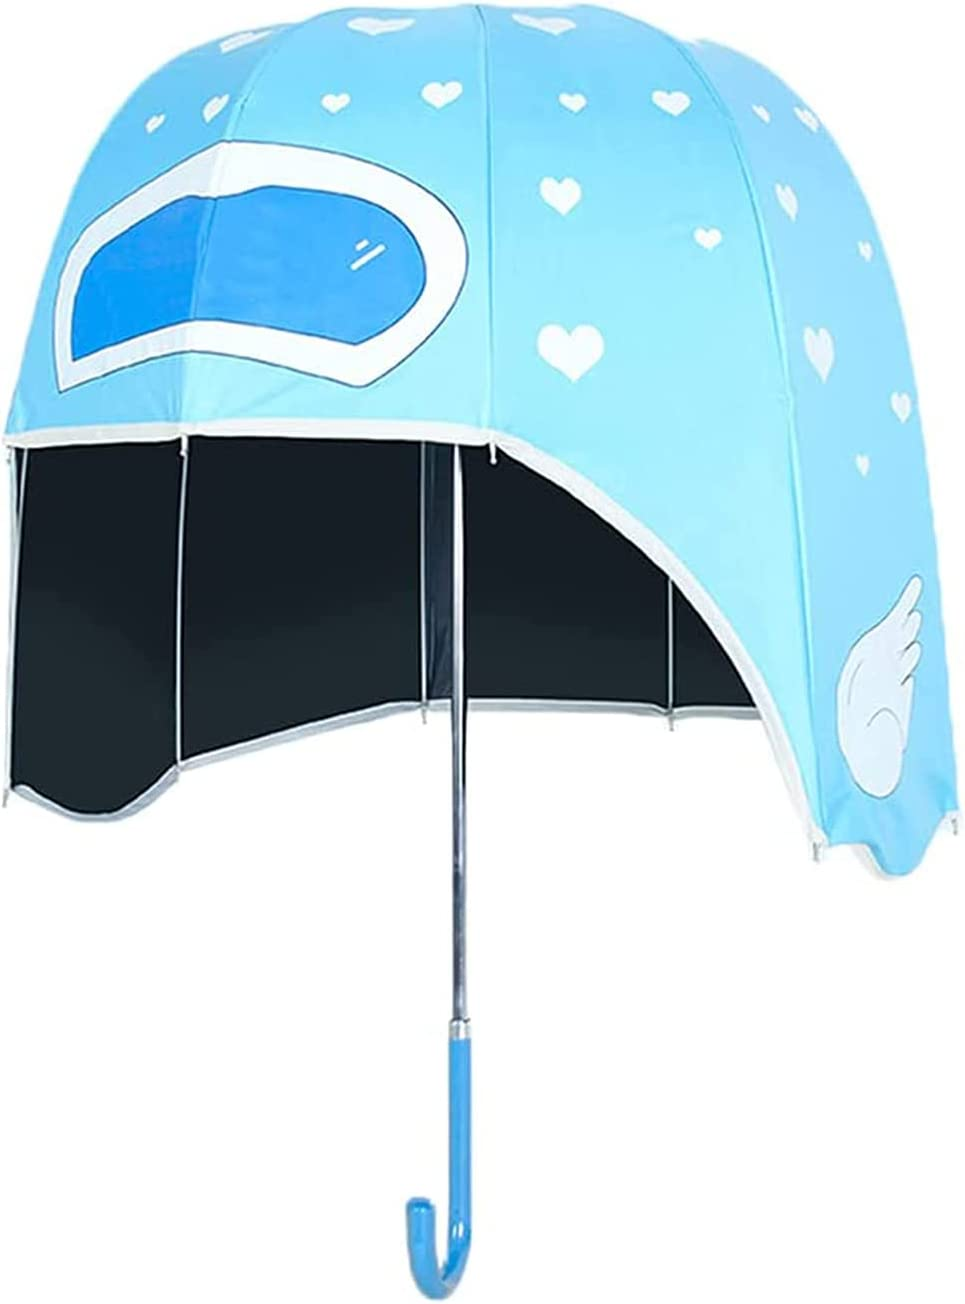 LJSF Helmet Umbrella Clear Japan Maker New Stick Bubble Animer and price revision Windproo Dome